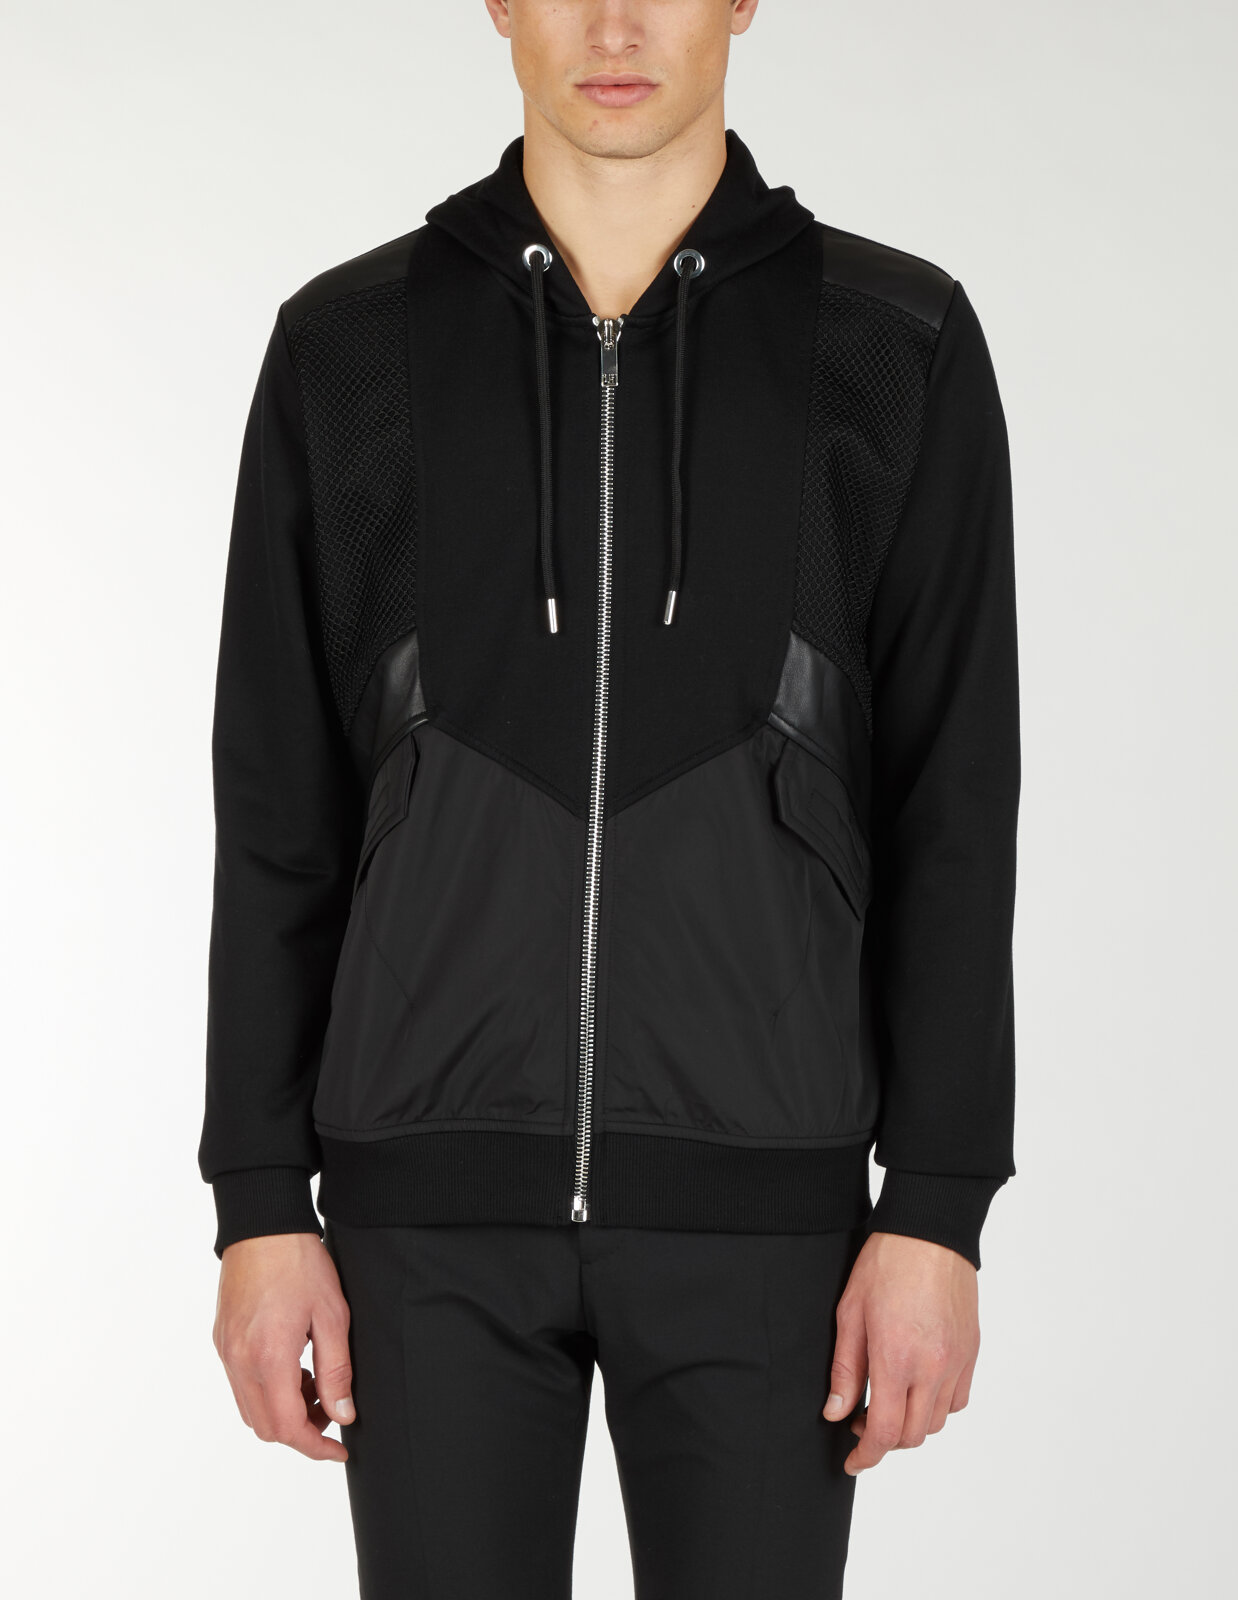 Zip Up Hoodie Mixed Fabric - Les Hommes